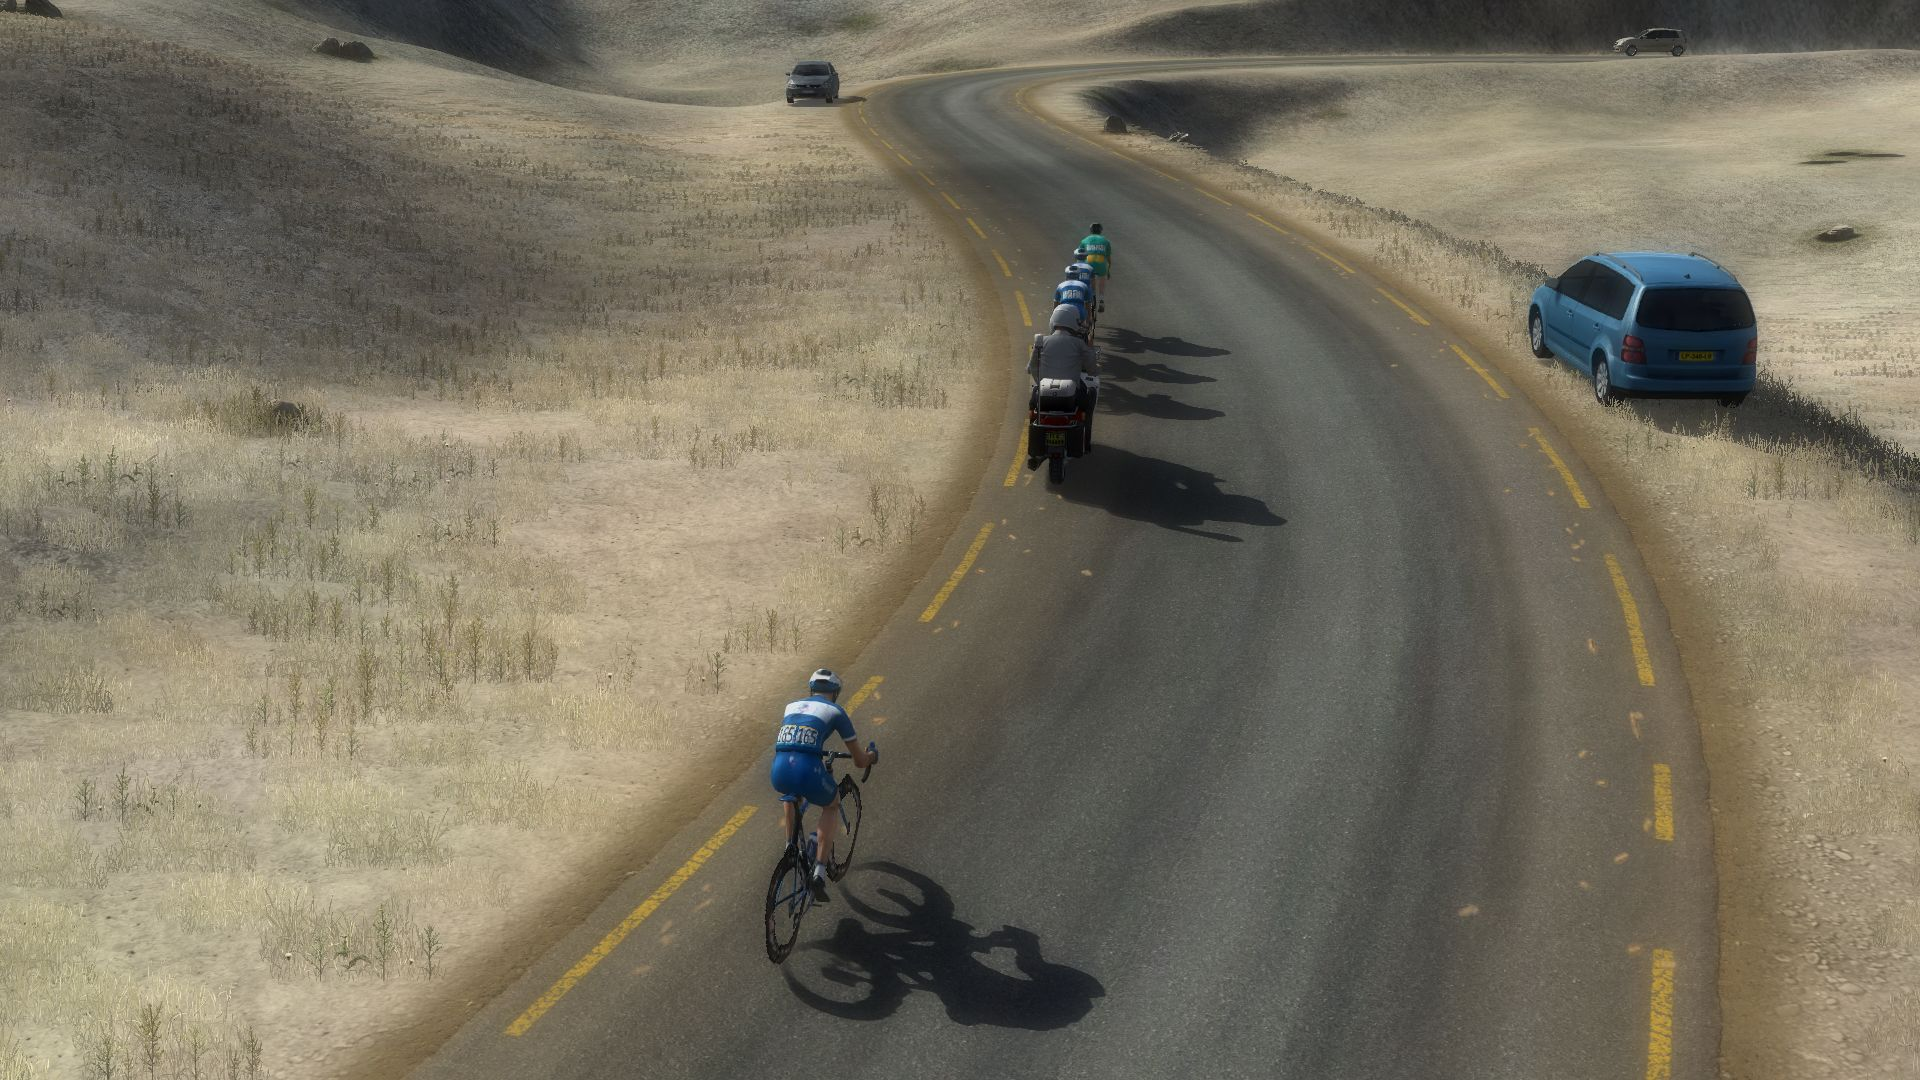 pcmdaily.com/images/mg/2019/Races/C2HC/Eritrea/TOES1%209.jpg